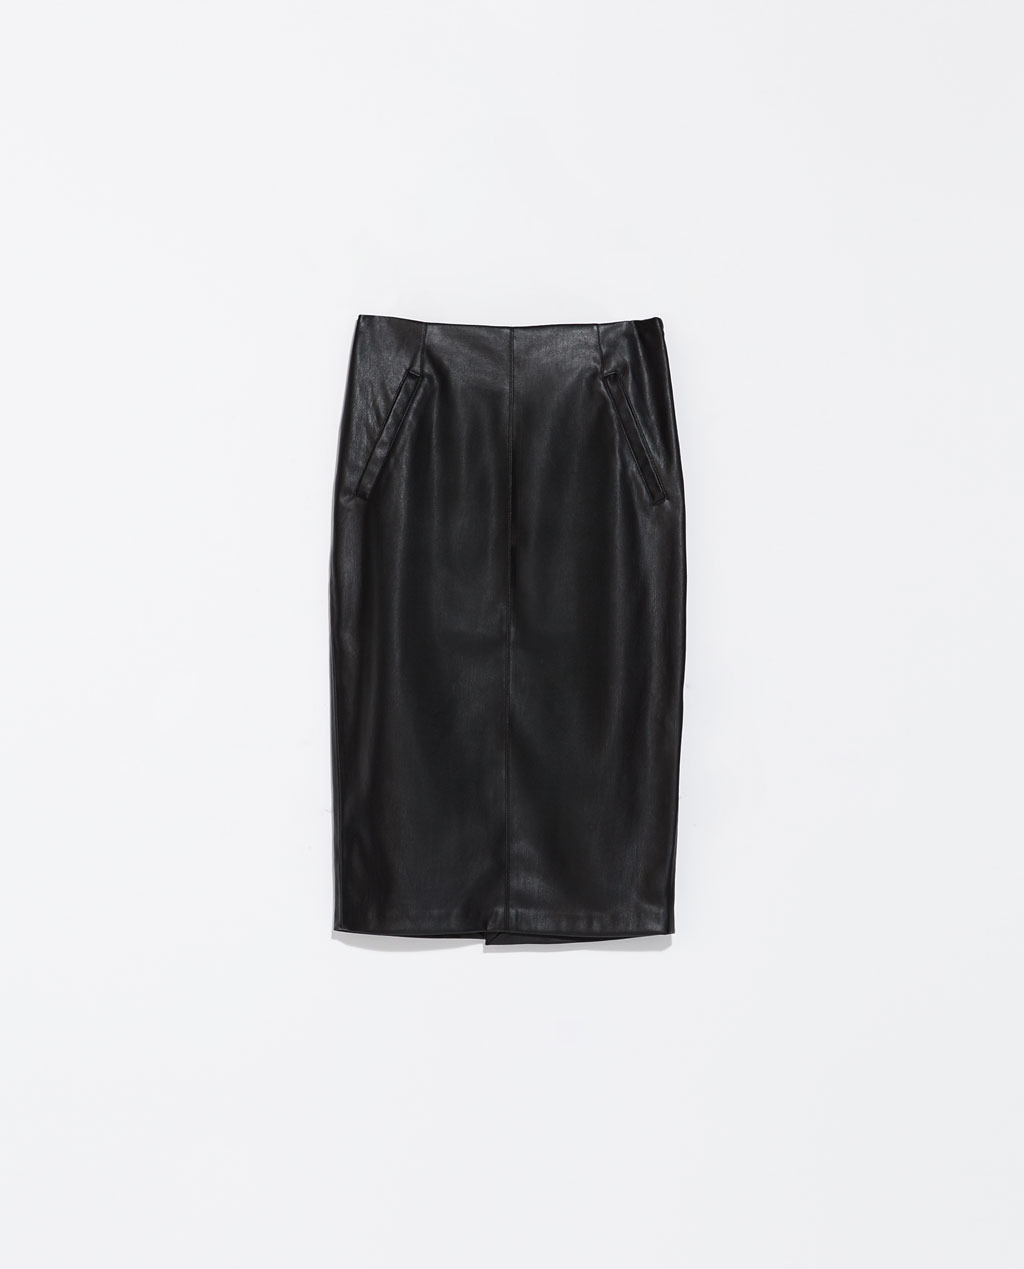 Faux Leather Pencil Skirt With Pockets - pattern: plain; style: pencil; fit: tailored/fitted; waist: high rise; predominant colour: black; occasions: evening, creative work; length: on the knee; texture group: leather; pattern type: fabric; fibres: pvc/polyurethene - 100%; season: s/s 2014